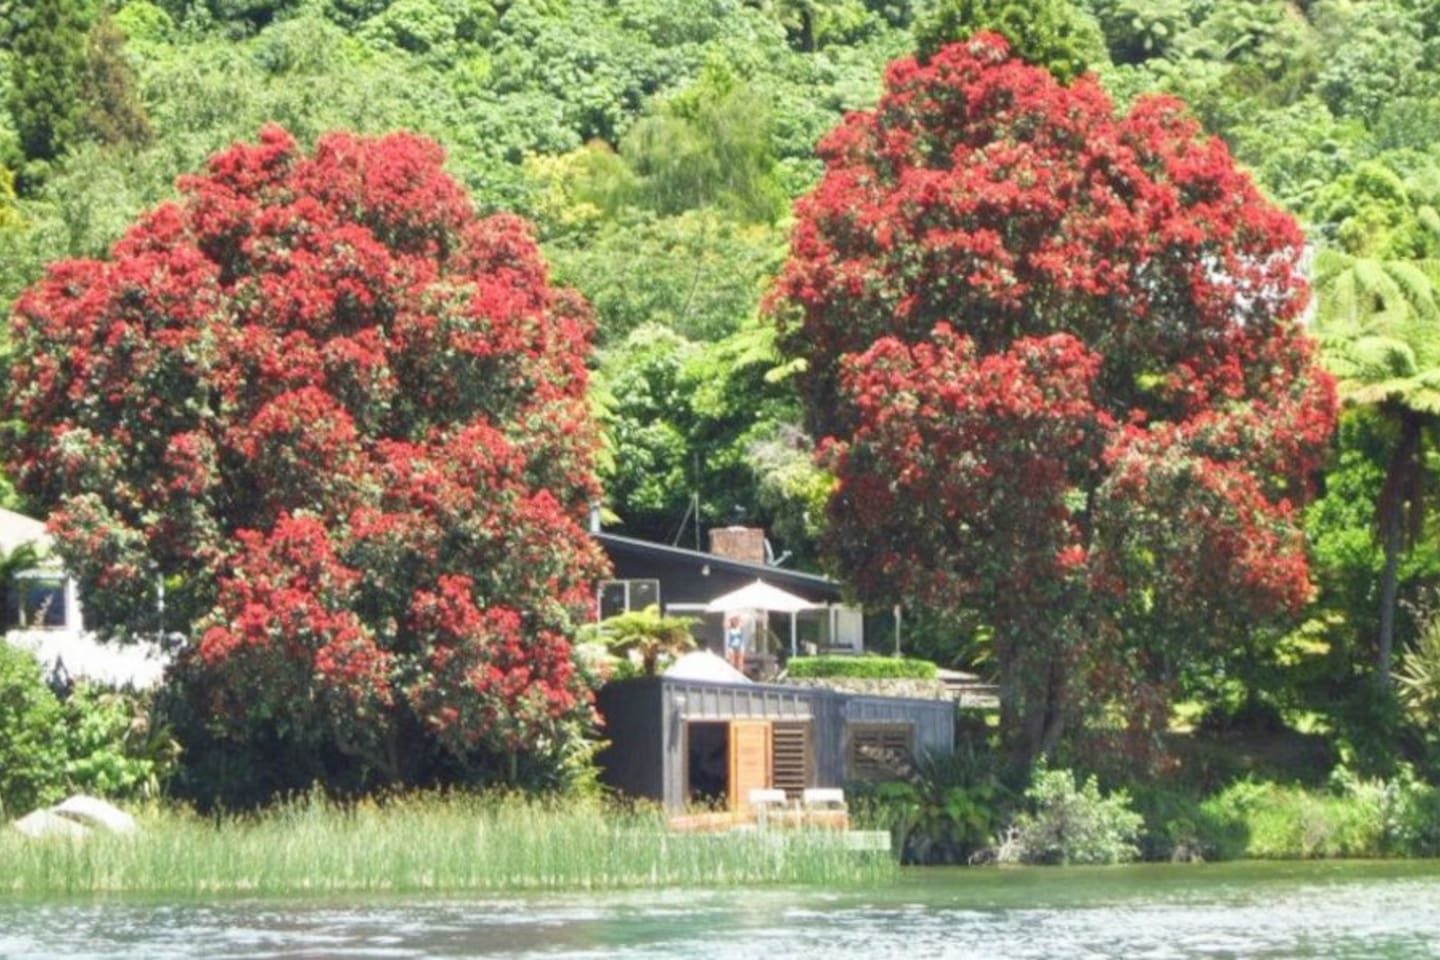 Towering native pohutukawas frame this stunning waterfront 3 br luxury property. The boatshed and private jetty give you direct access to stunning Lake Tarawera for swimming, fishing, and water sports. Natural hot pools accessible by boat.